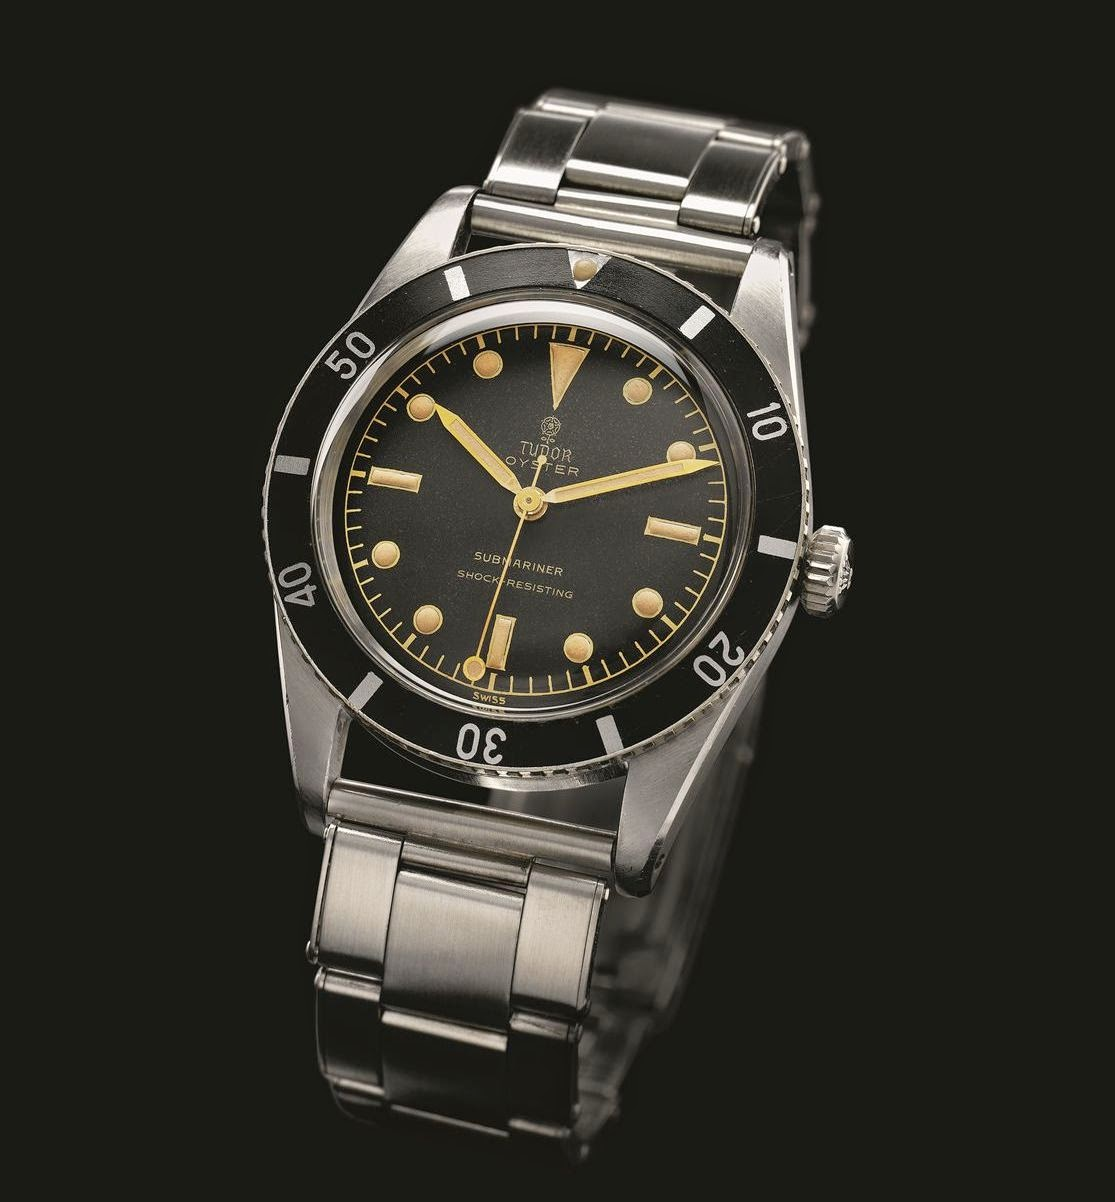 Tudor historical diving watches manufactured by tudor - Tudor dive watch ...